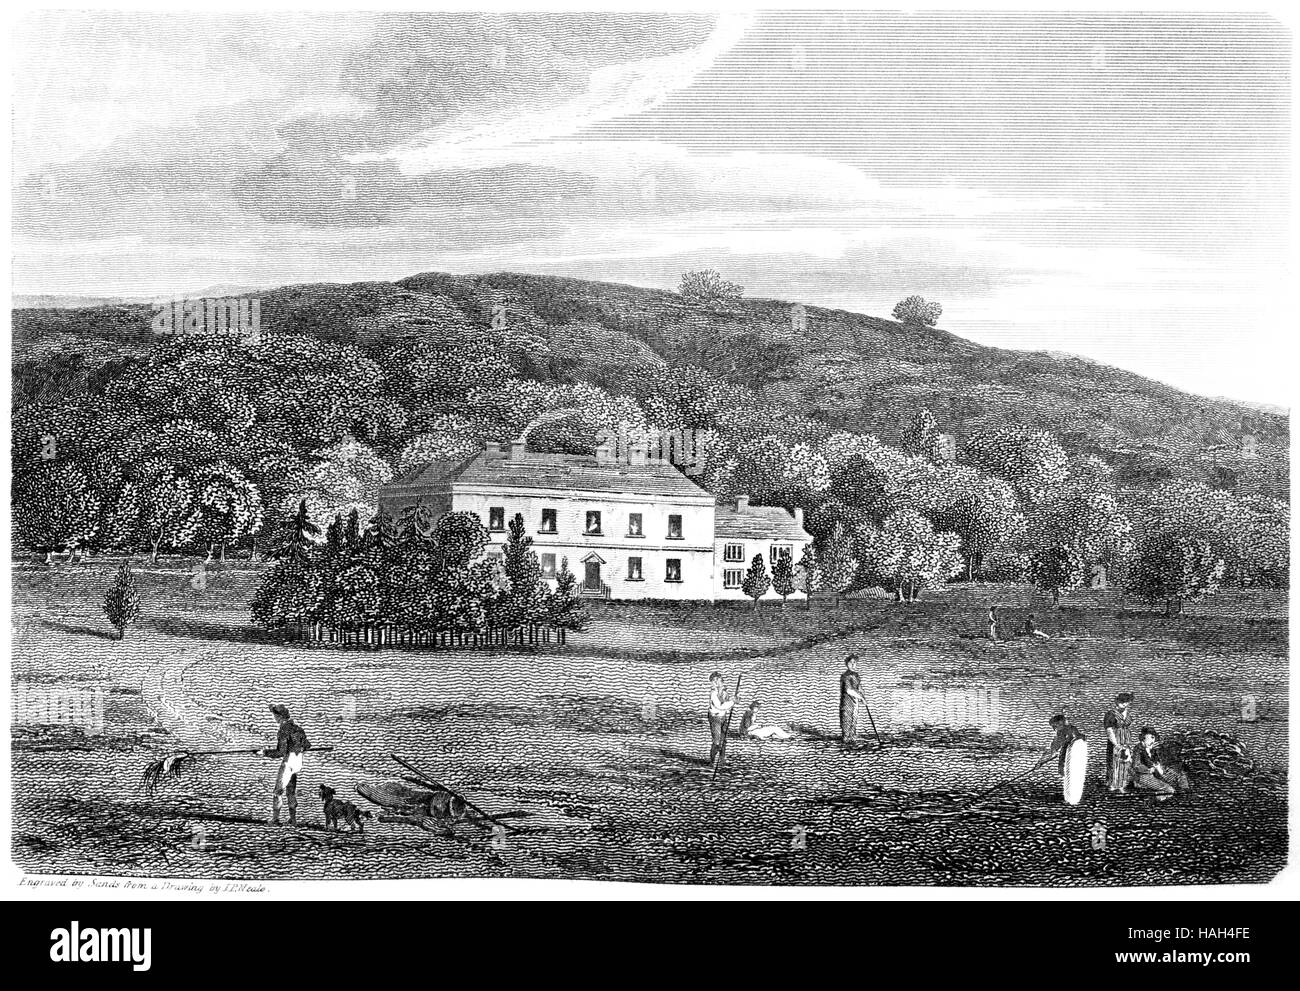 An engraving of Stradmore House, Cardiganshire scanned at high resolution from a book printed in 1812. Believed - Stock Image